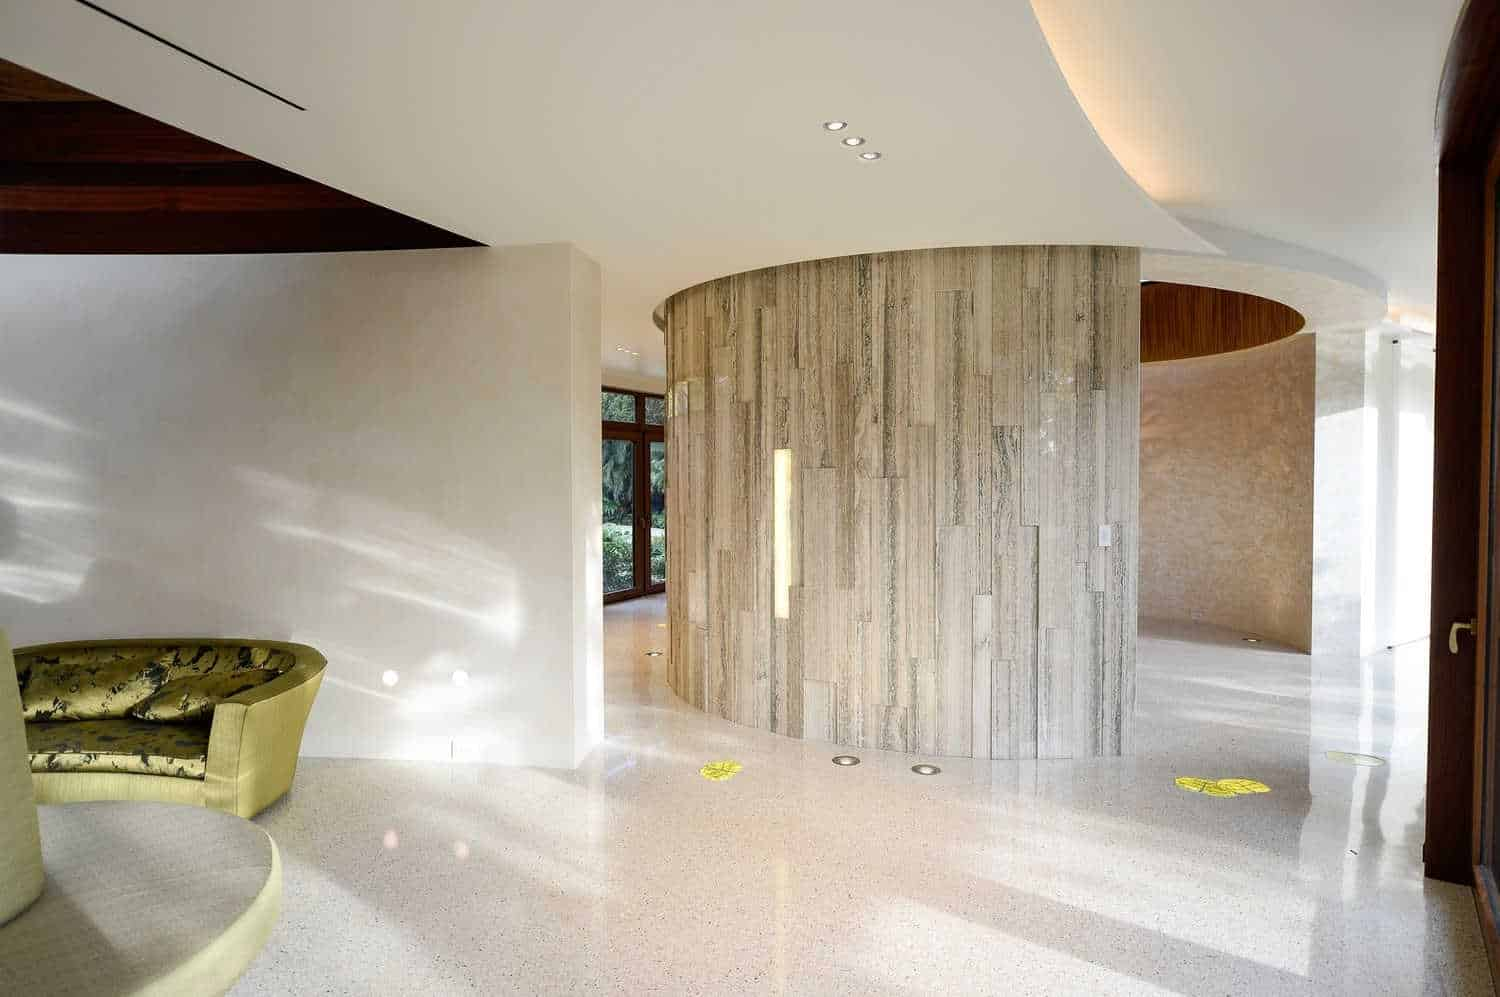 This foyer is surrounded by white walls, flooring and lighted by recessed lights.